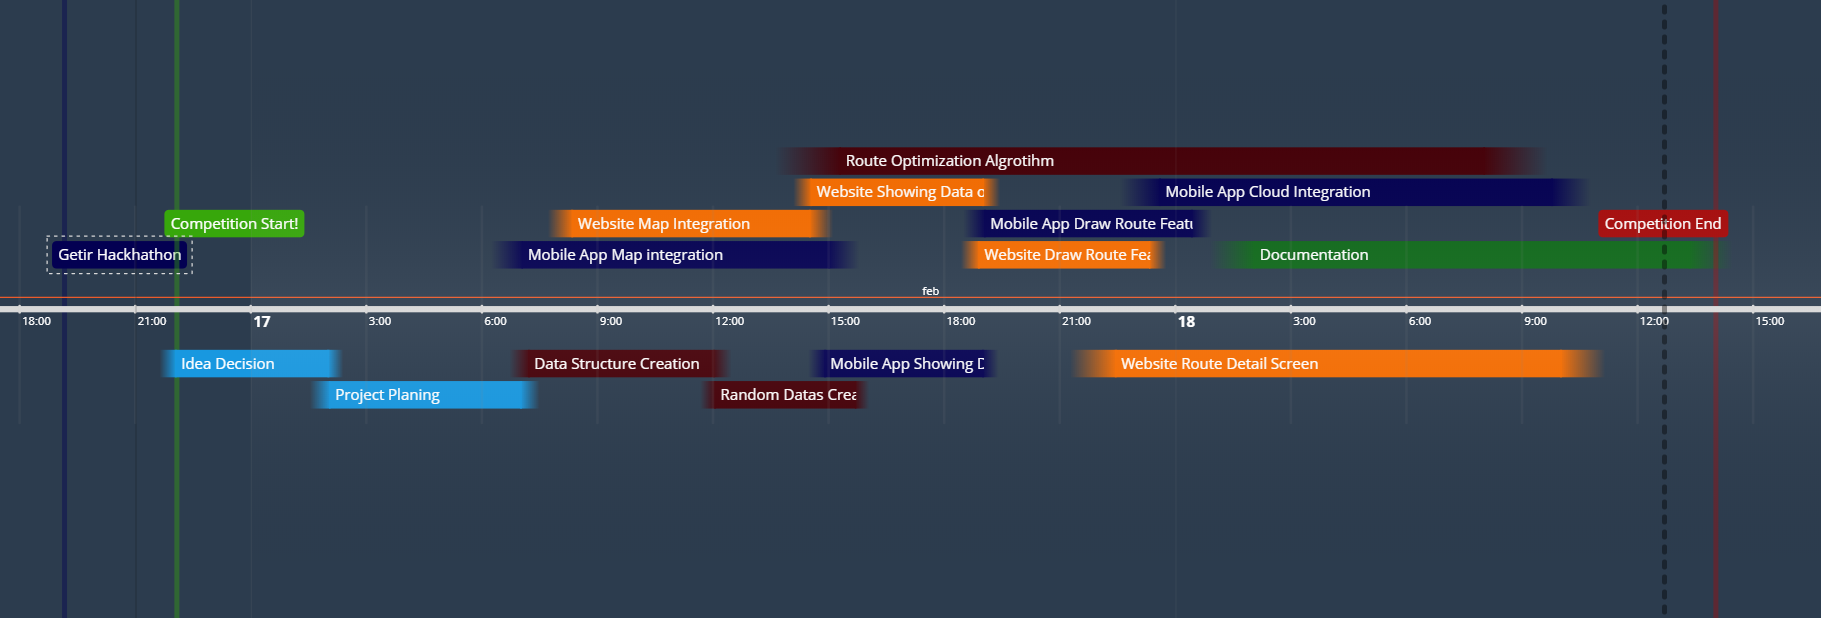 Timeline of our little project!